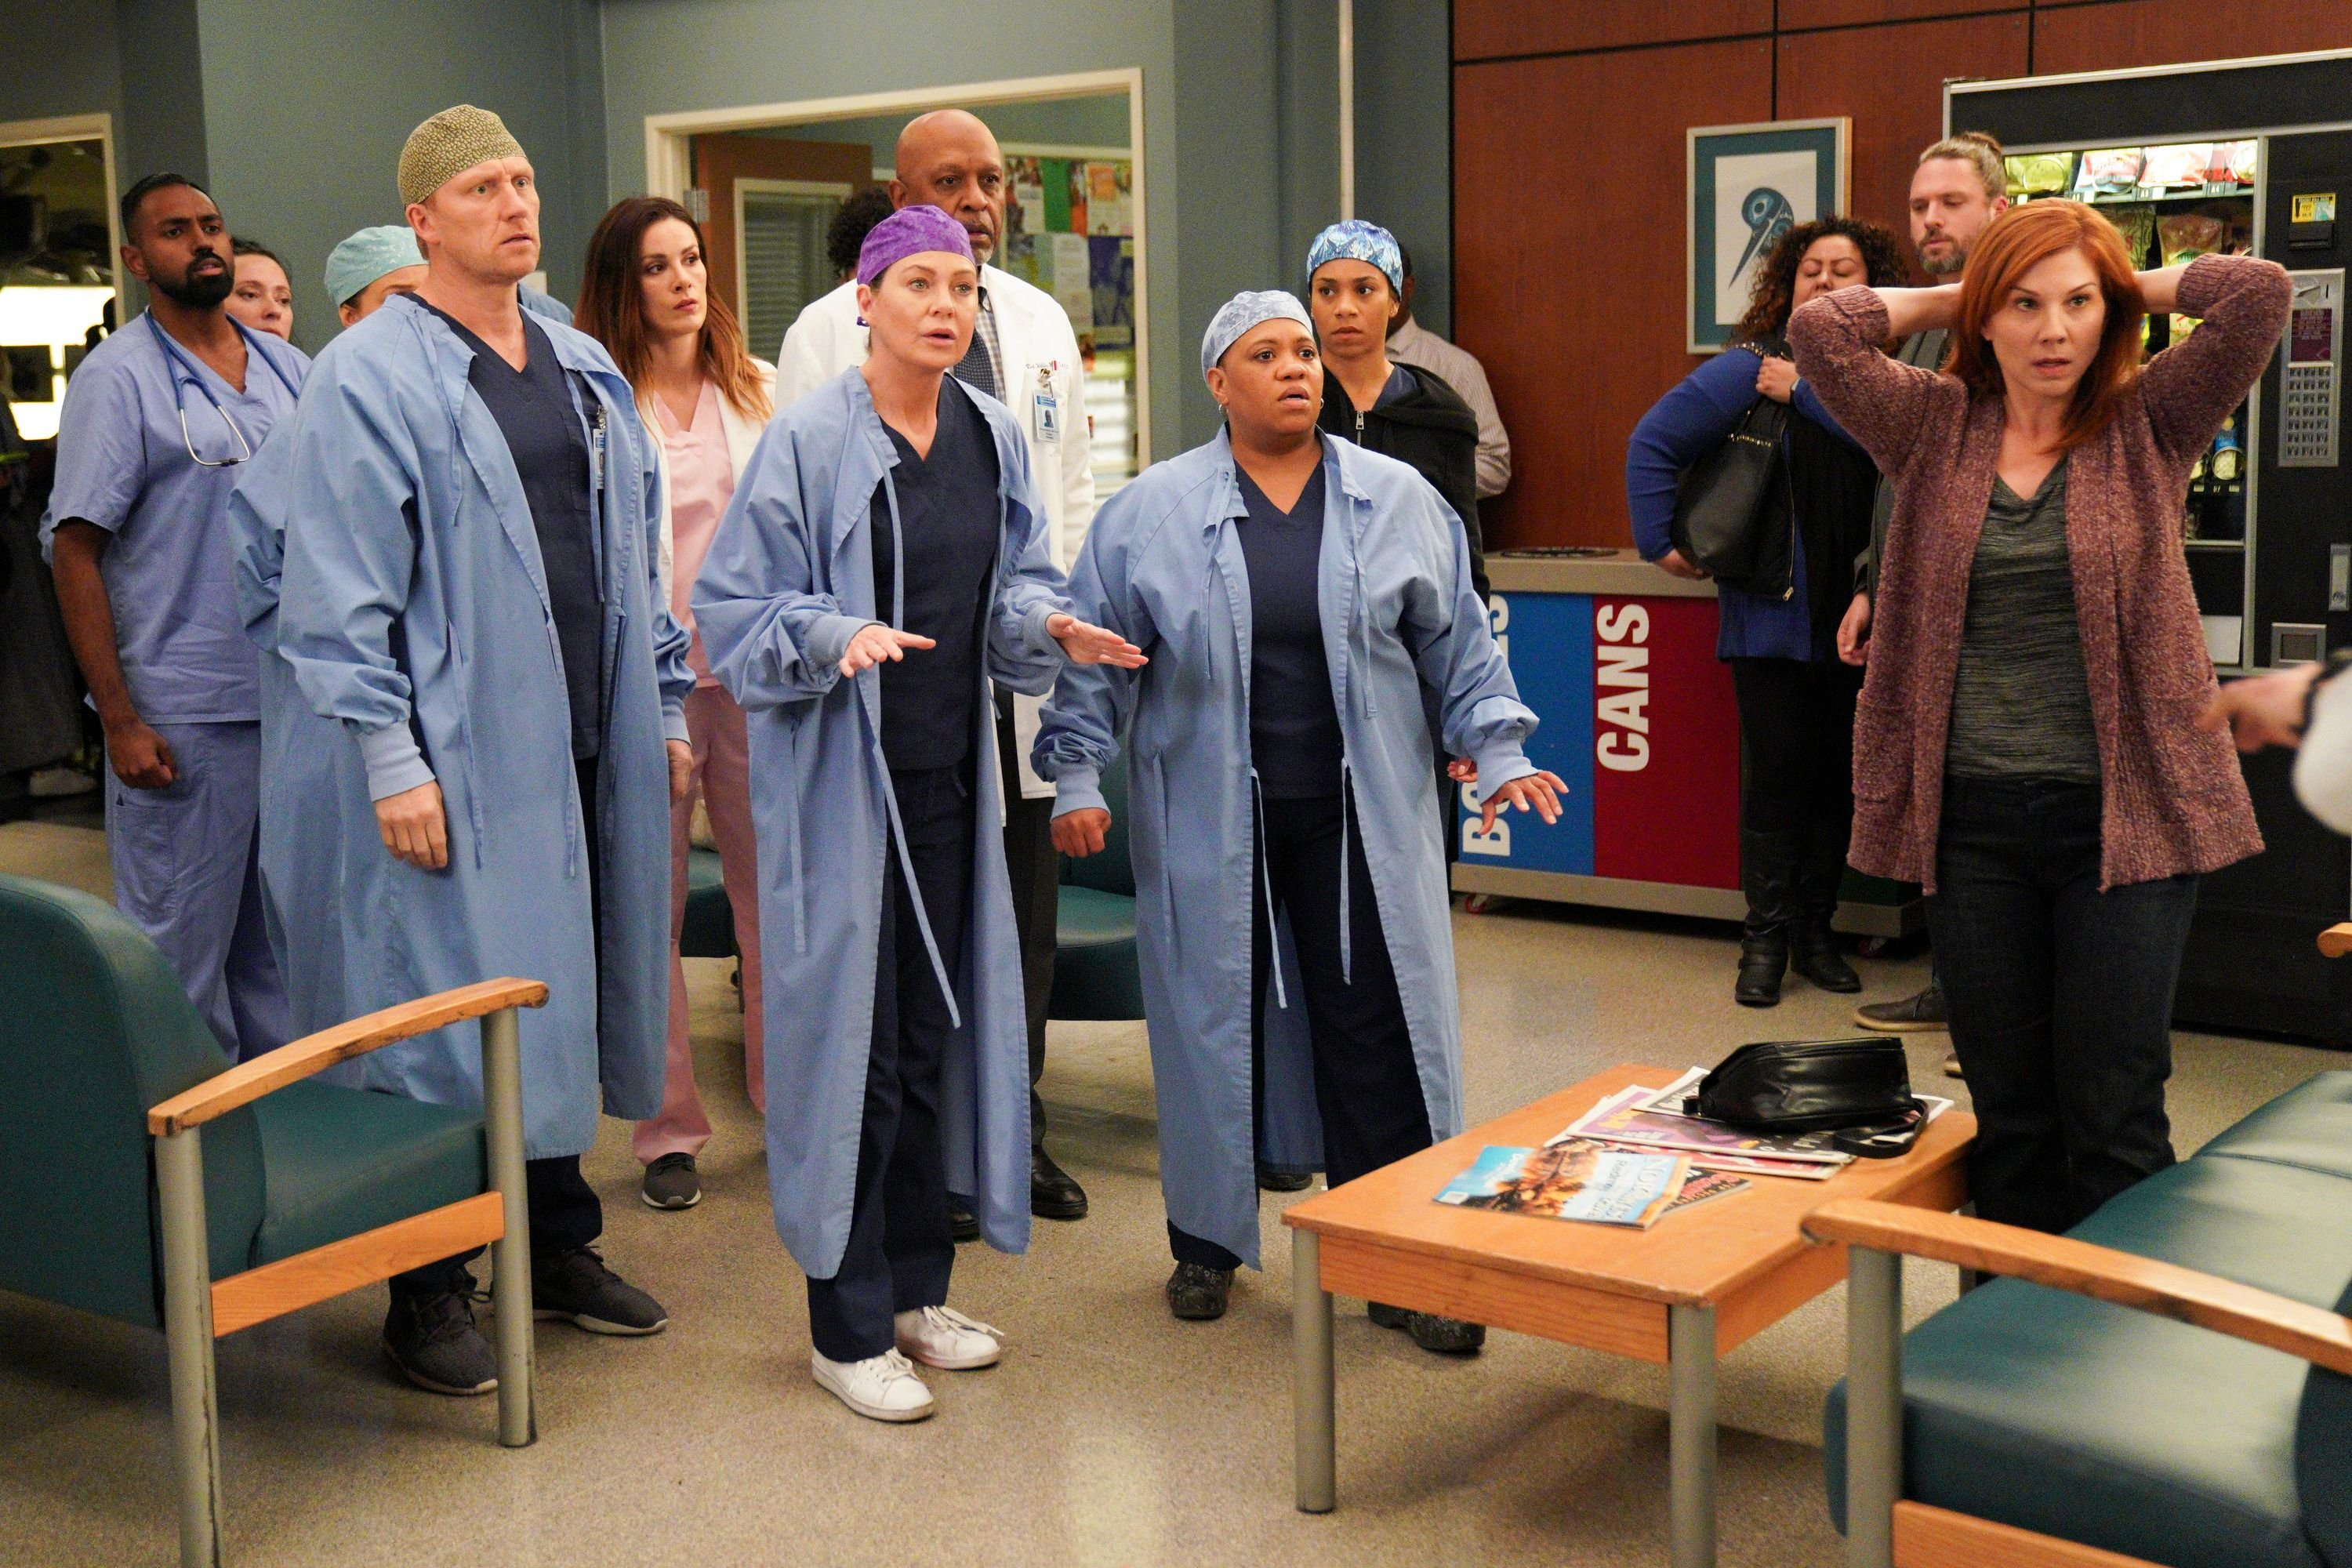 A still from 'Grey's Anatomy' episode 'Give a Little Bit' | Photo: Getty Images